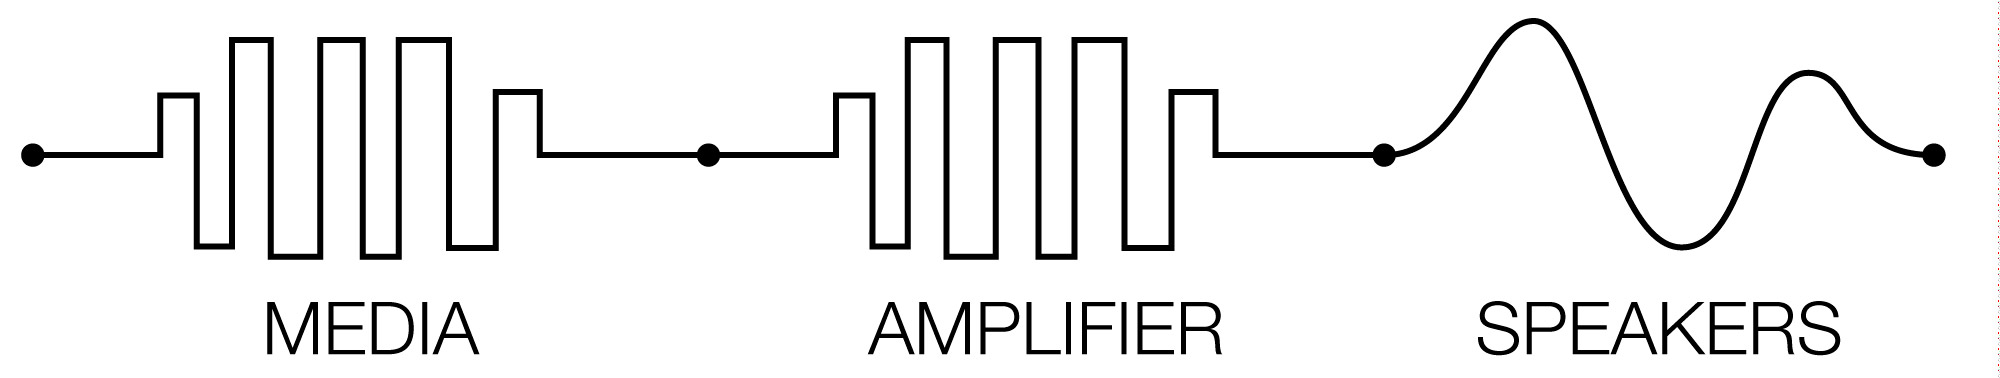 digital-amplification-1